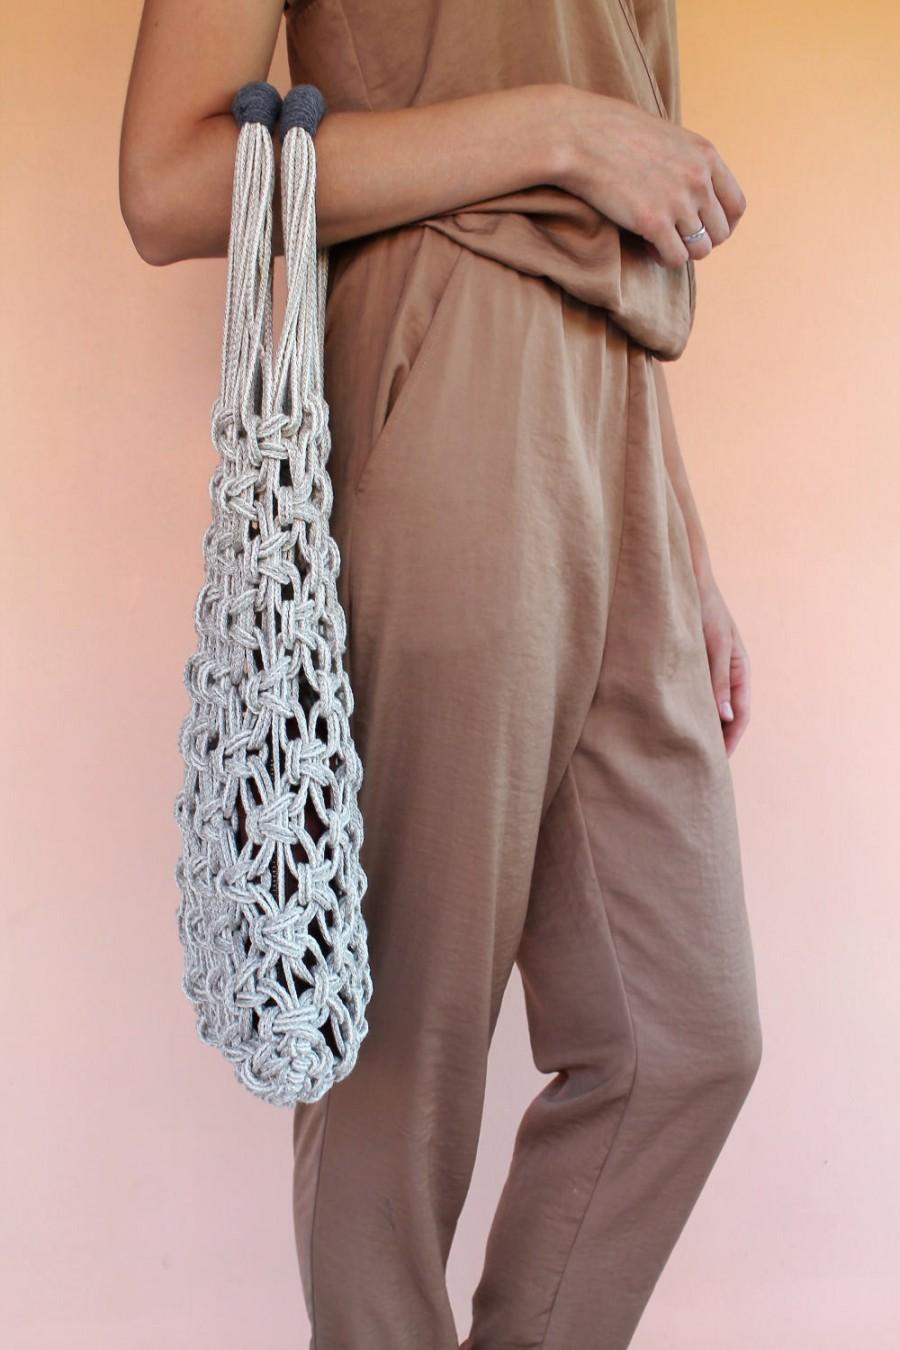 Mariage - Macrame Tote Bag - Shopper Bag - Natural Linen and Cotton Bag - Eco Friendly bag - Vegan bag - Summer Bag - Beige and Grey Color